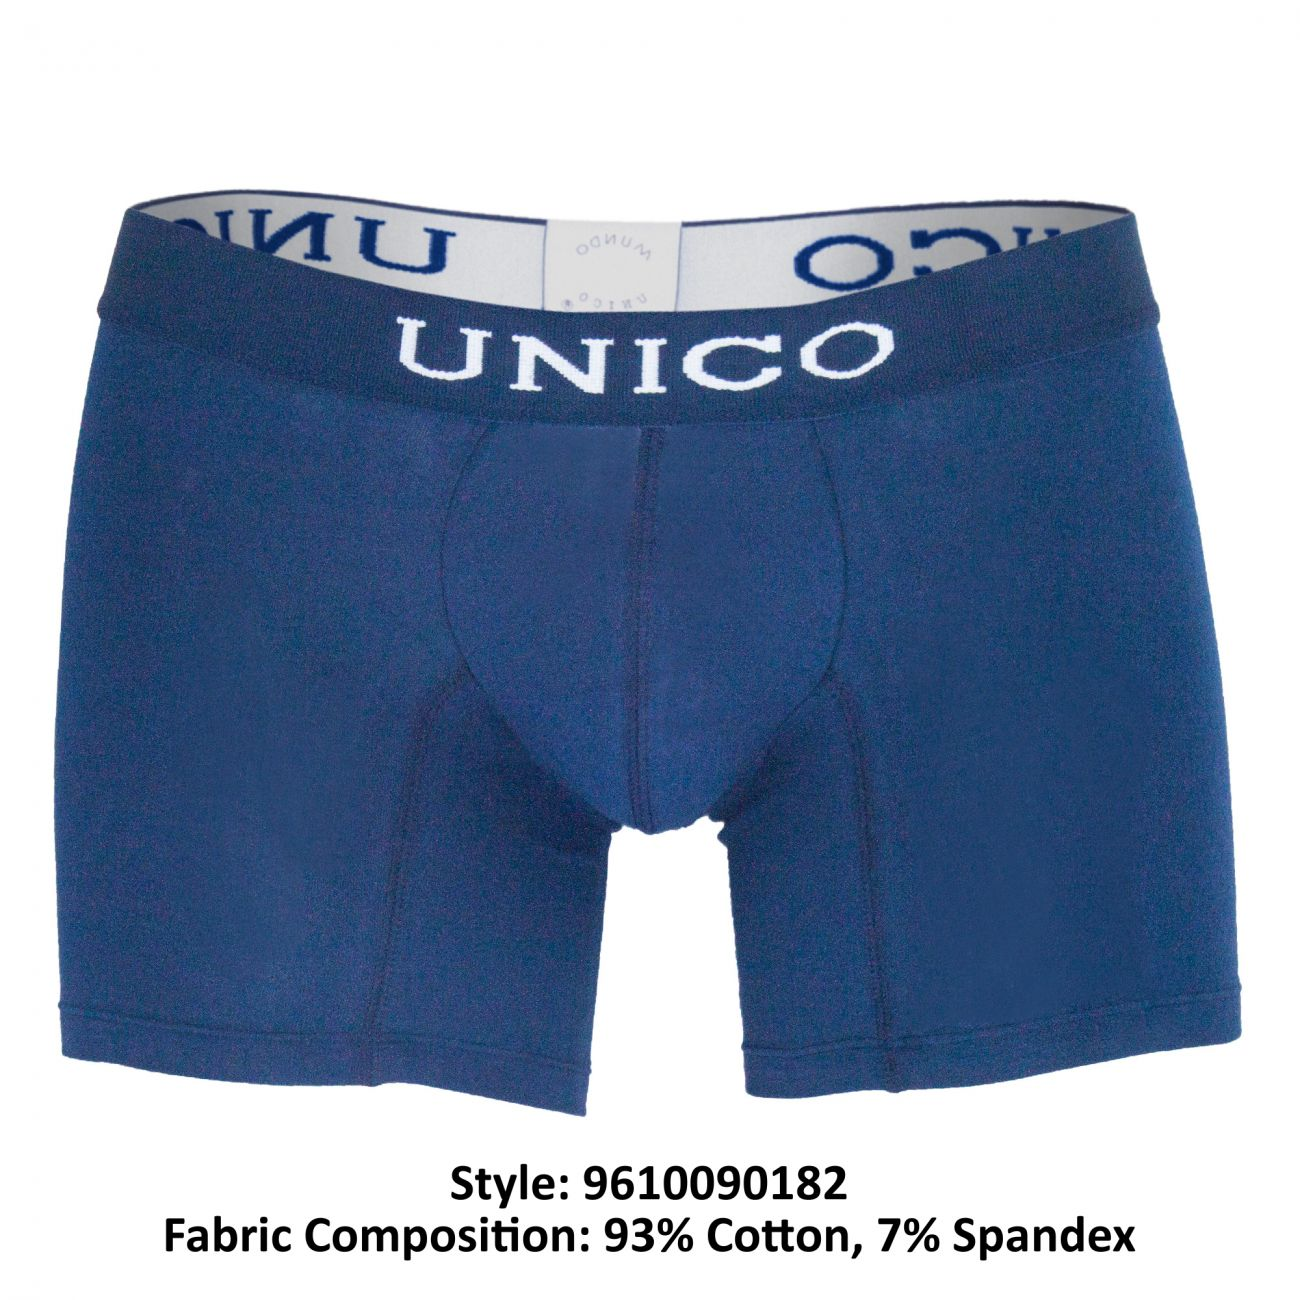 under-yours - (9612010020282) Boxer Briefs Profundo Cotton - Unico - Mens Underwear